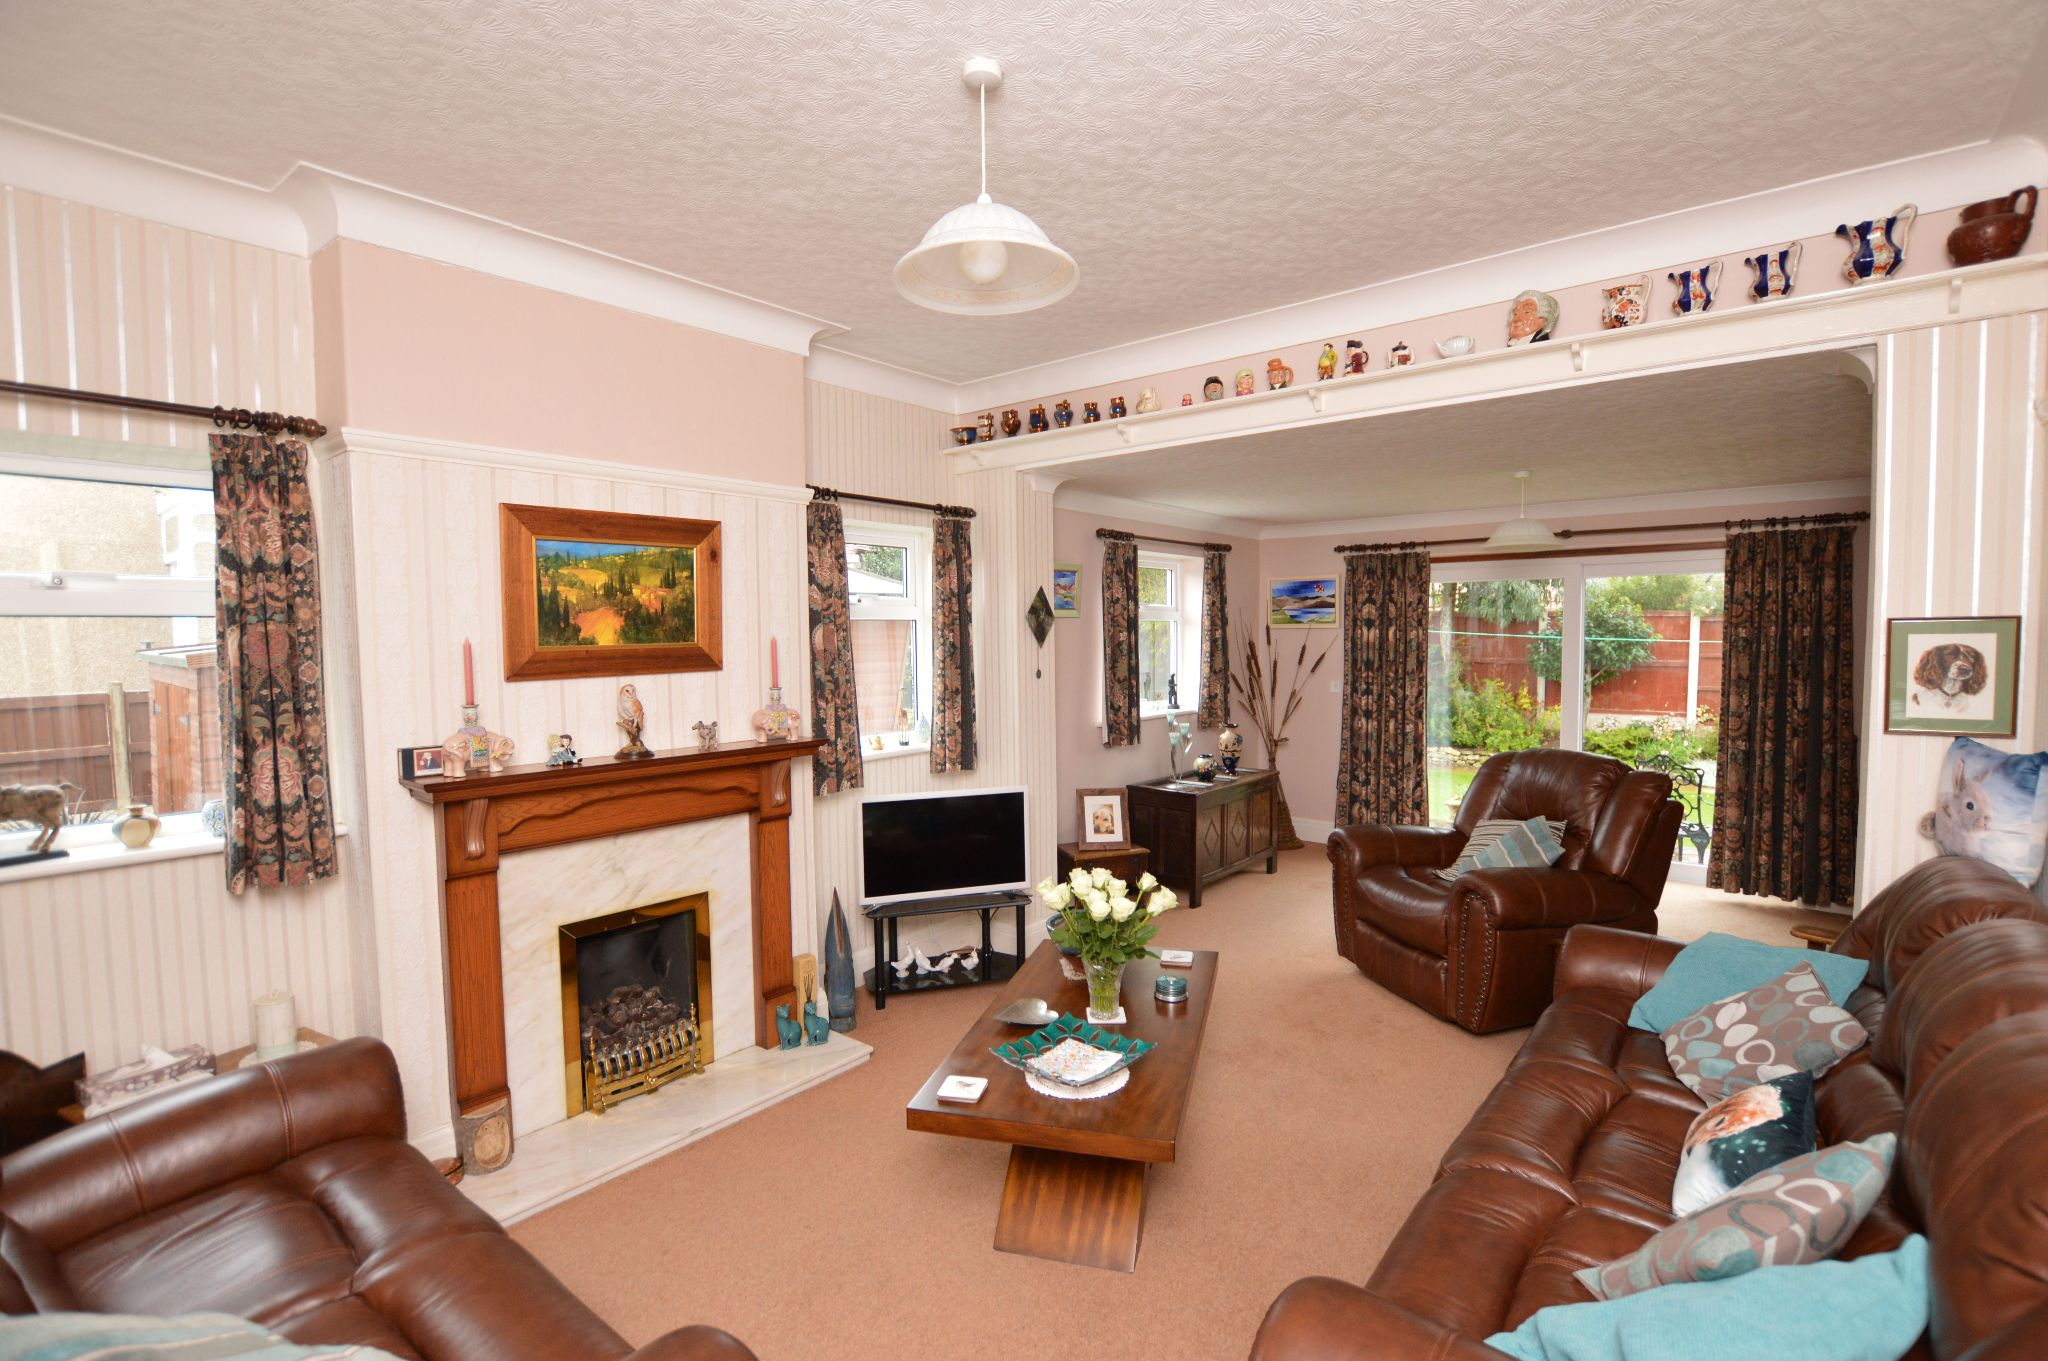 4 bedroom detached bungalow For Sale in Abergele - Lounge